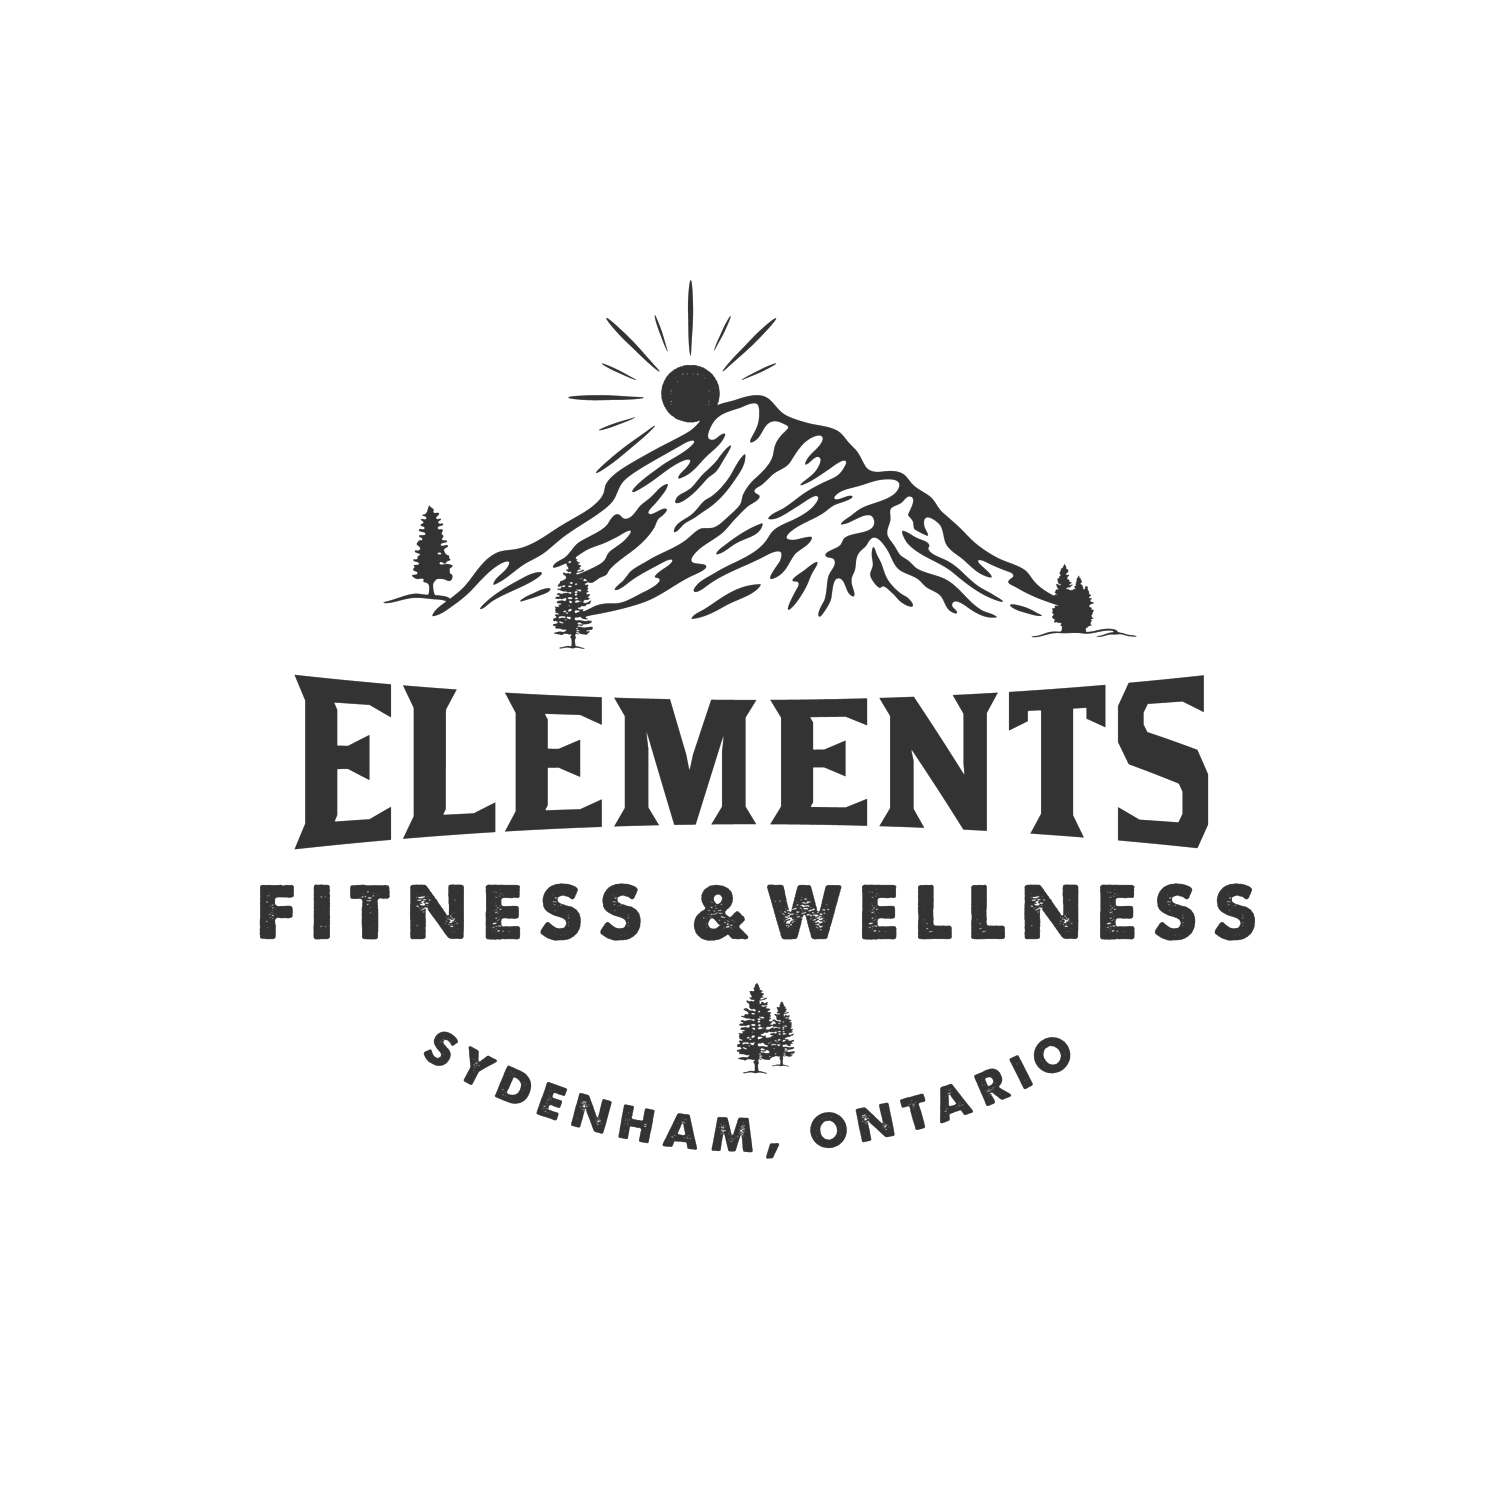 Elements Fitness and Wellness logo